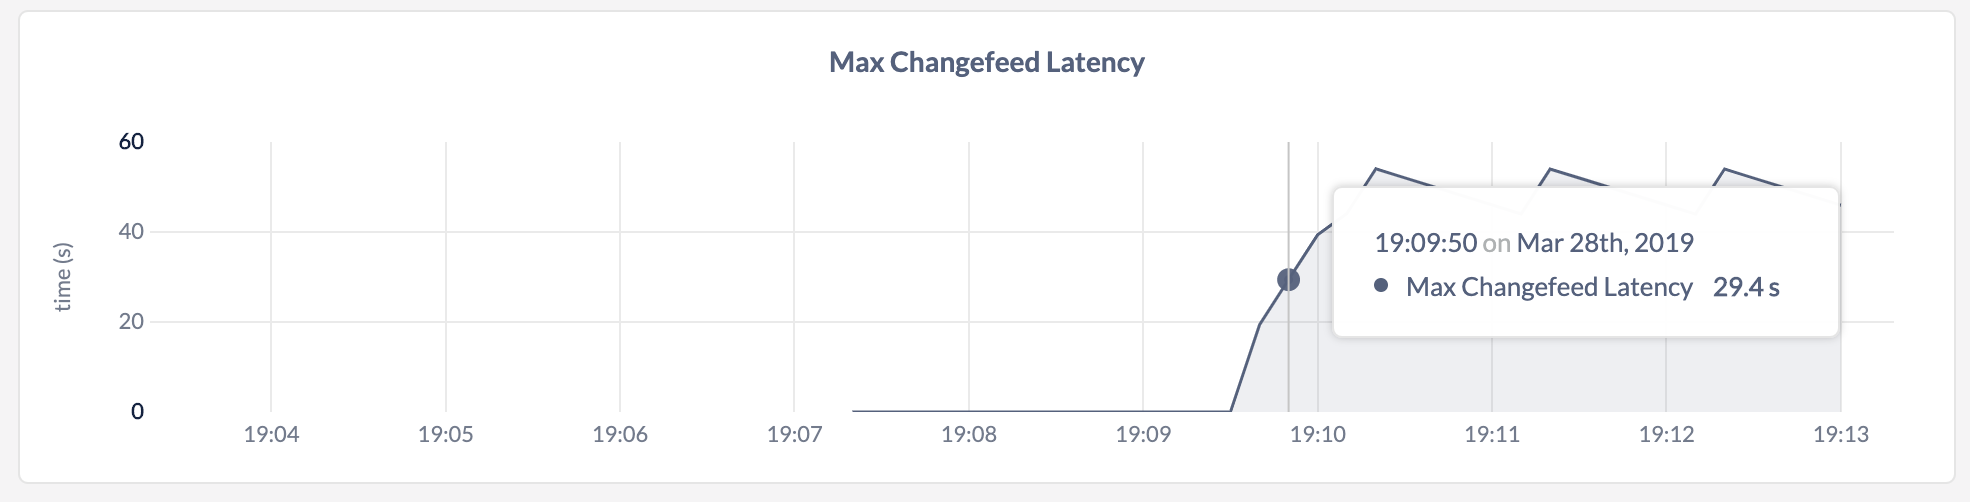 CockroachDB Admin UI Max Changefeed Latency graph